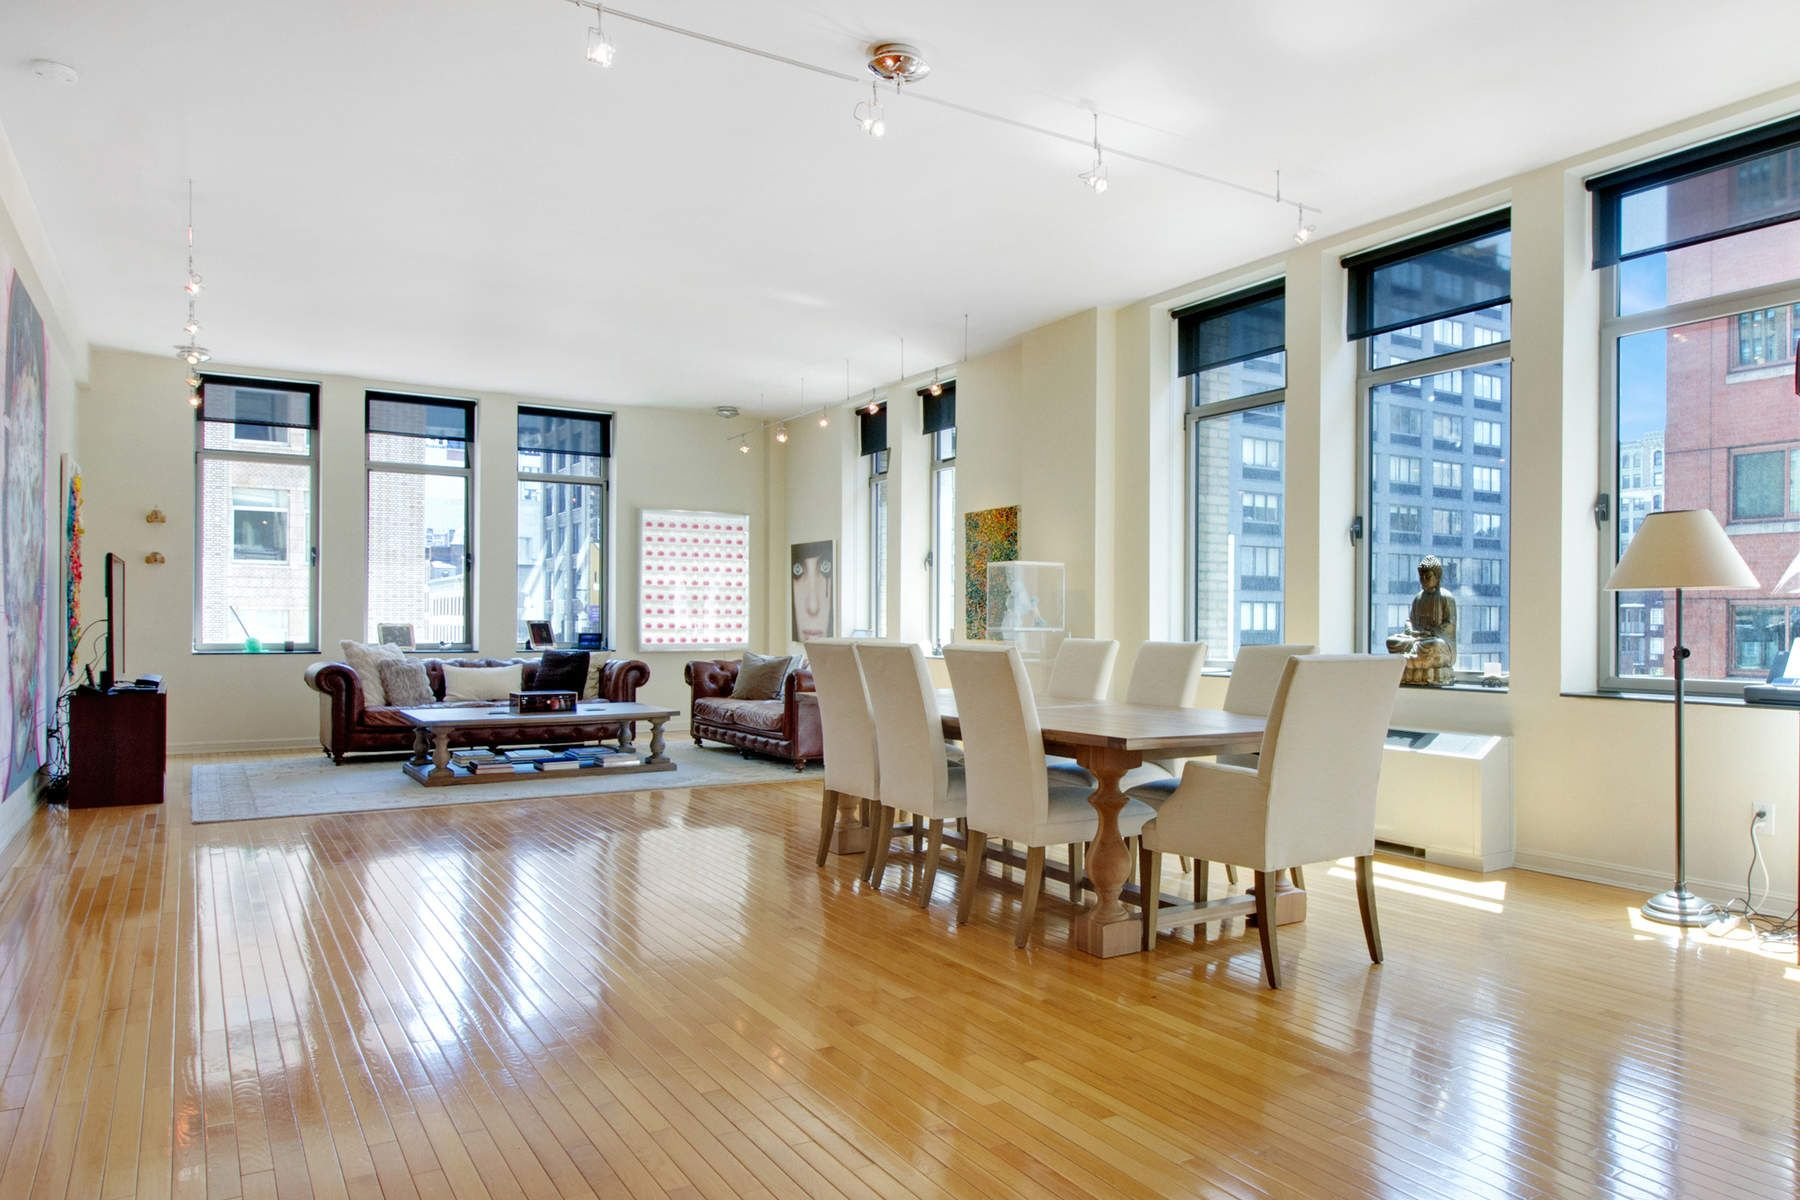 Condominium for Sale at Chelsea Mercantile 252 Seventh Avenue Apt 5P New York, New York 10001 United States